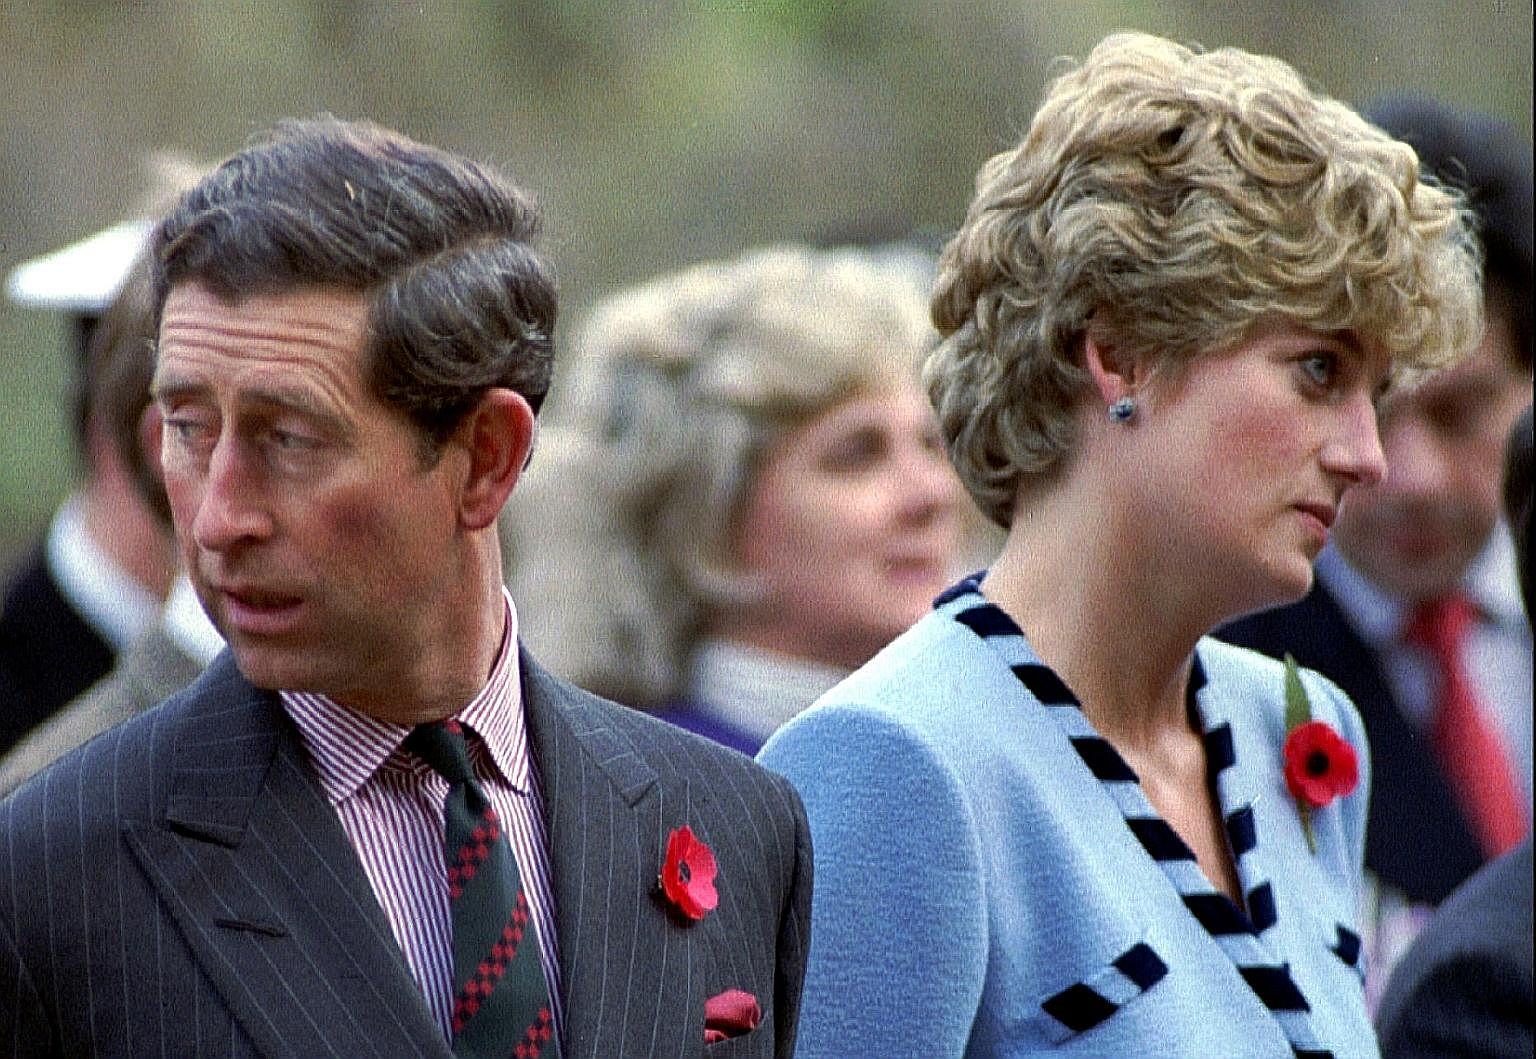 Prince Charles and Princess Diana looking in different directions during a Korean War commemorative service in November 1992.